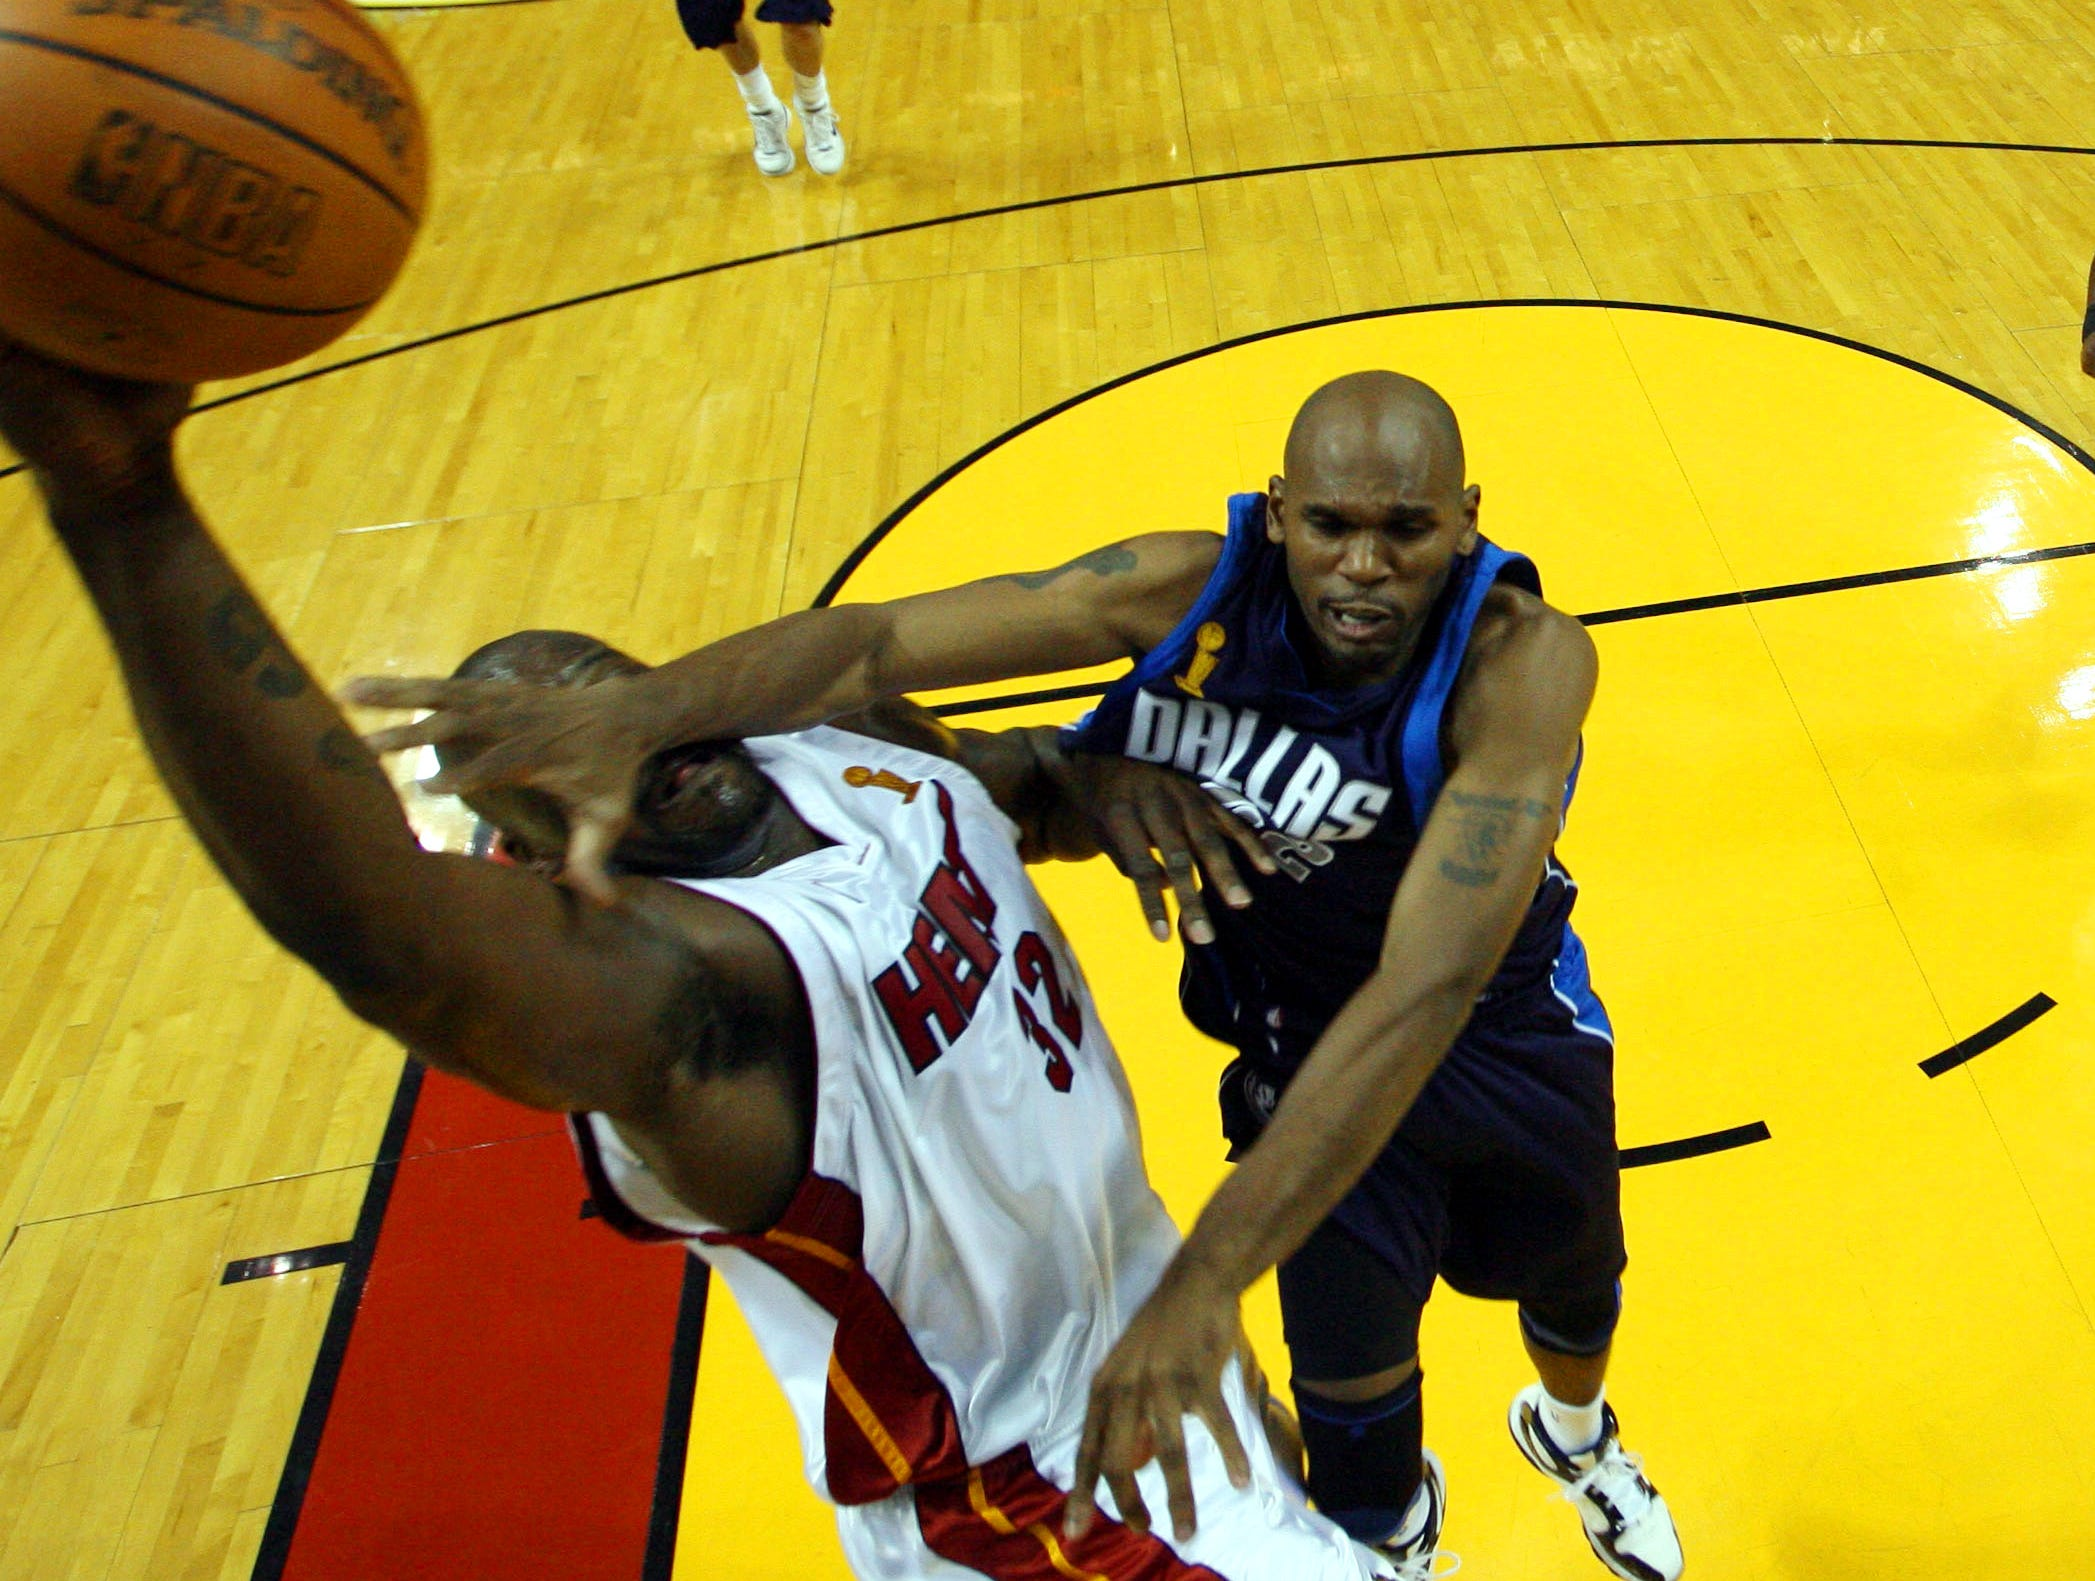 Miami Heat center Shaquille O'Neal (32) is defended by Dallas Mavericks guard Jerry Stackhouse, right, in the second half of Game 4 during the NBA basketball finals in Miami, Thursday, June 15, 2006.  The Heat won, 98-74.